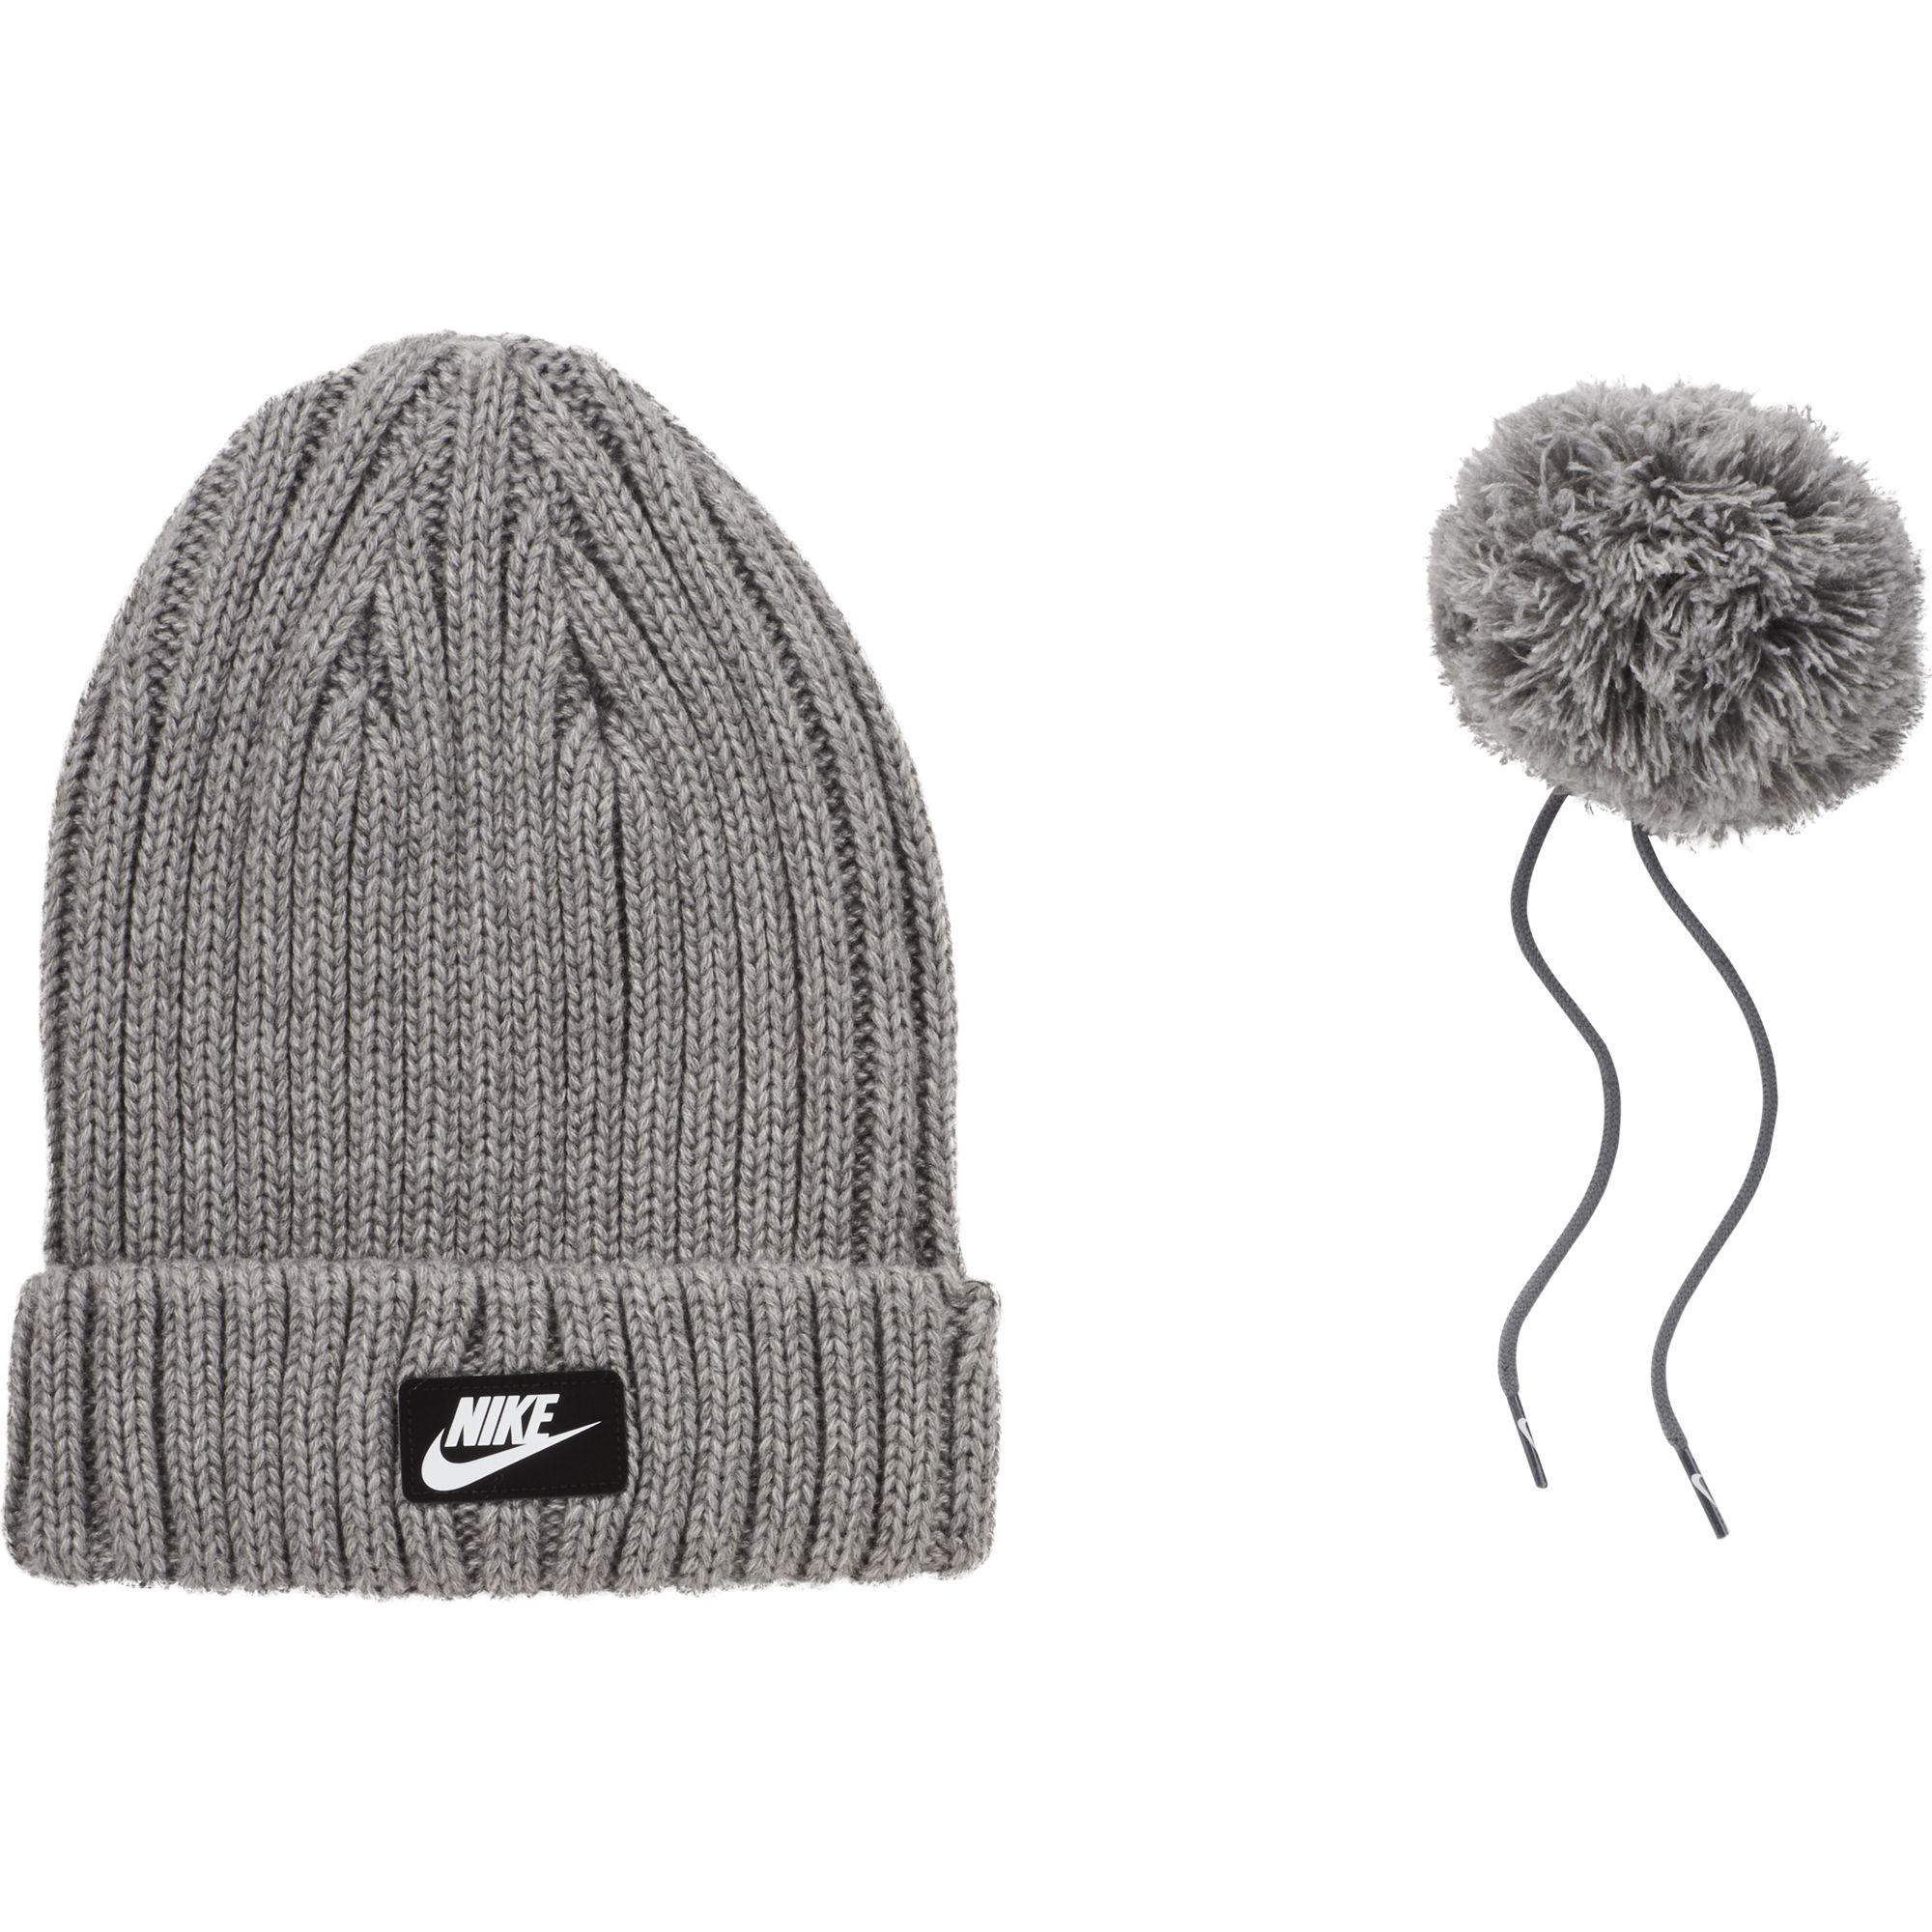 Women's Cuffed Pom Beanie, Heather Gray, swatch